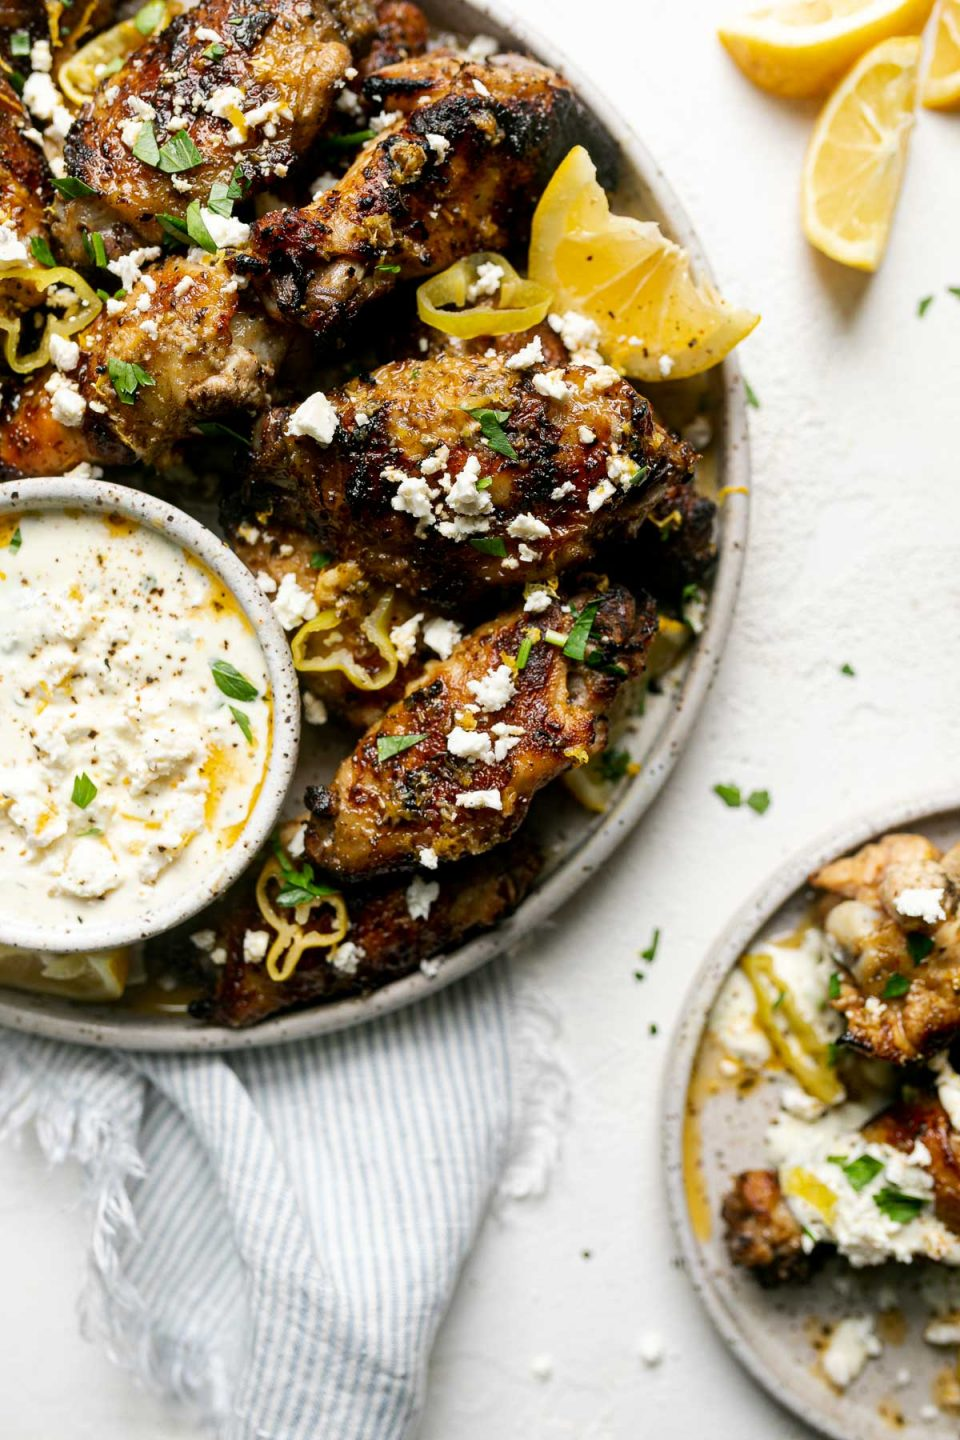 Grilled Greek Chicken Wings arranged on a gray speckled ceramic platter are garnished with herbs, sliced pepperocini, lemon wedges, & feta cheese. A small ceramic bowl is filled with whipped feta dip & also sits on the platter with wings surrounding it. Surrounding the plate is a small plate of wings, a bowl of whole pepperocini peppers, lemon wedges, feta crumbles, loose chopped herbs, & a blue & white striped linen napkin tucked partially under the platter. The platter & surrounding items sit on top of a white textured surface.